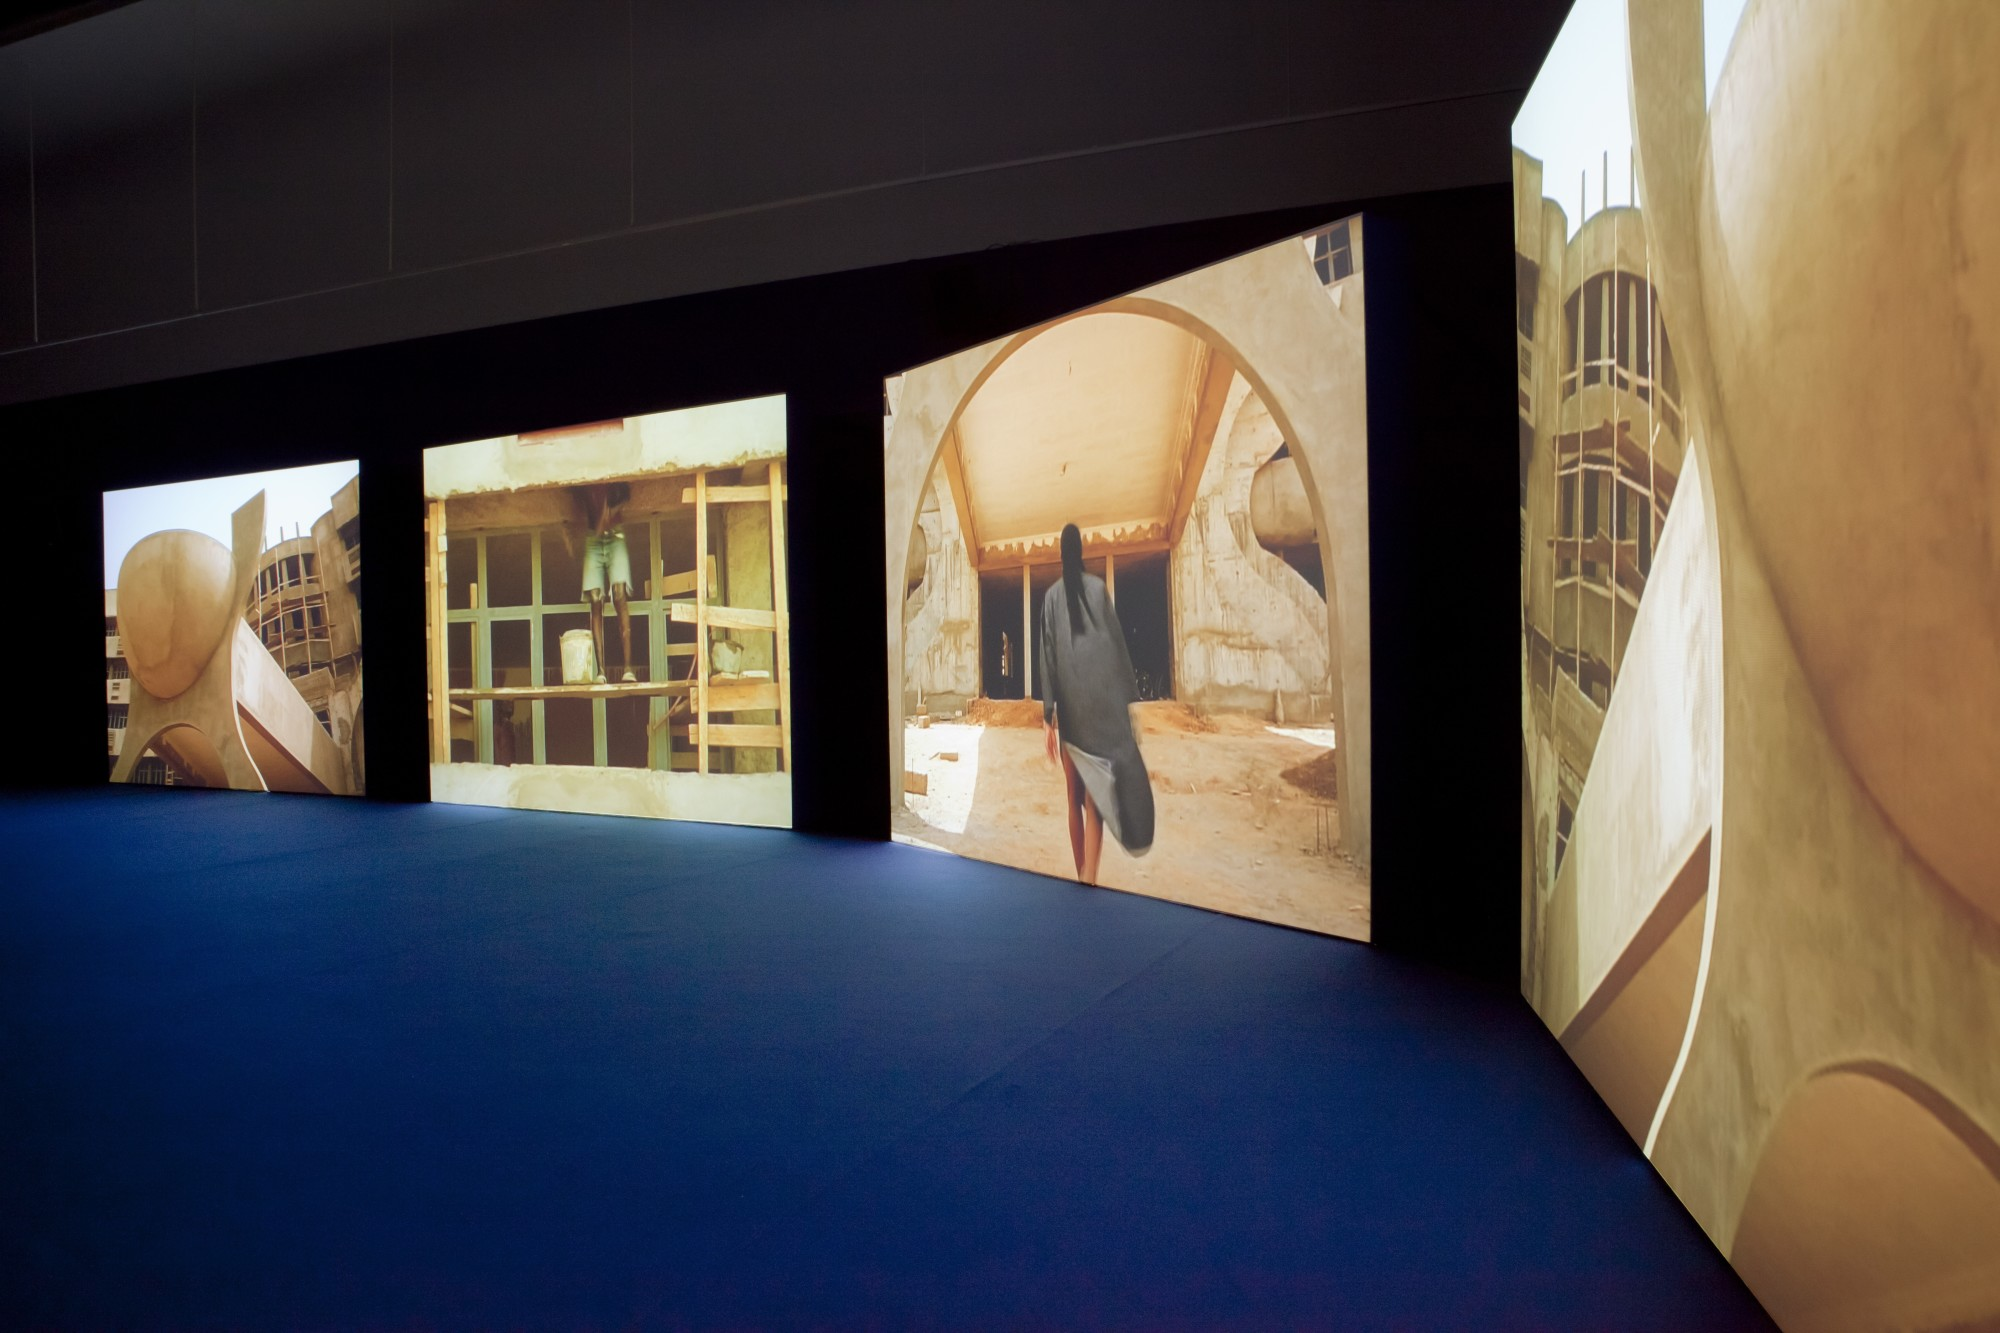 Isaac Julien. Kunsternes Hus, Oslo, 2012  23', four-screen projection, 16mm colour film transferred to DVD, sound